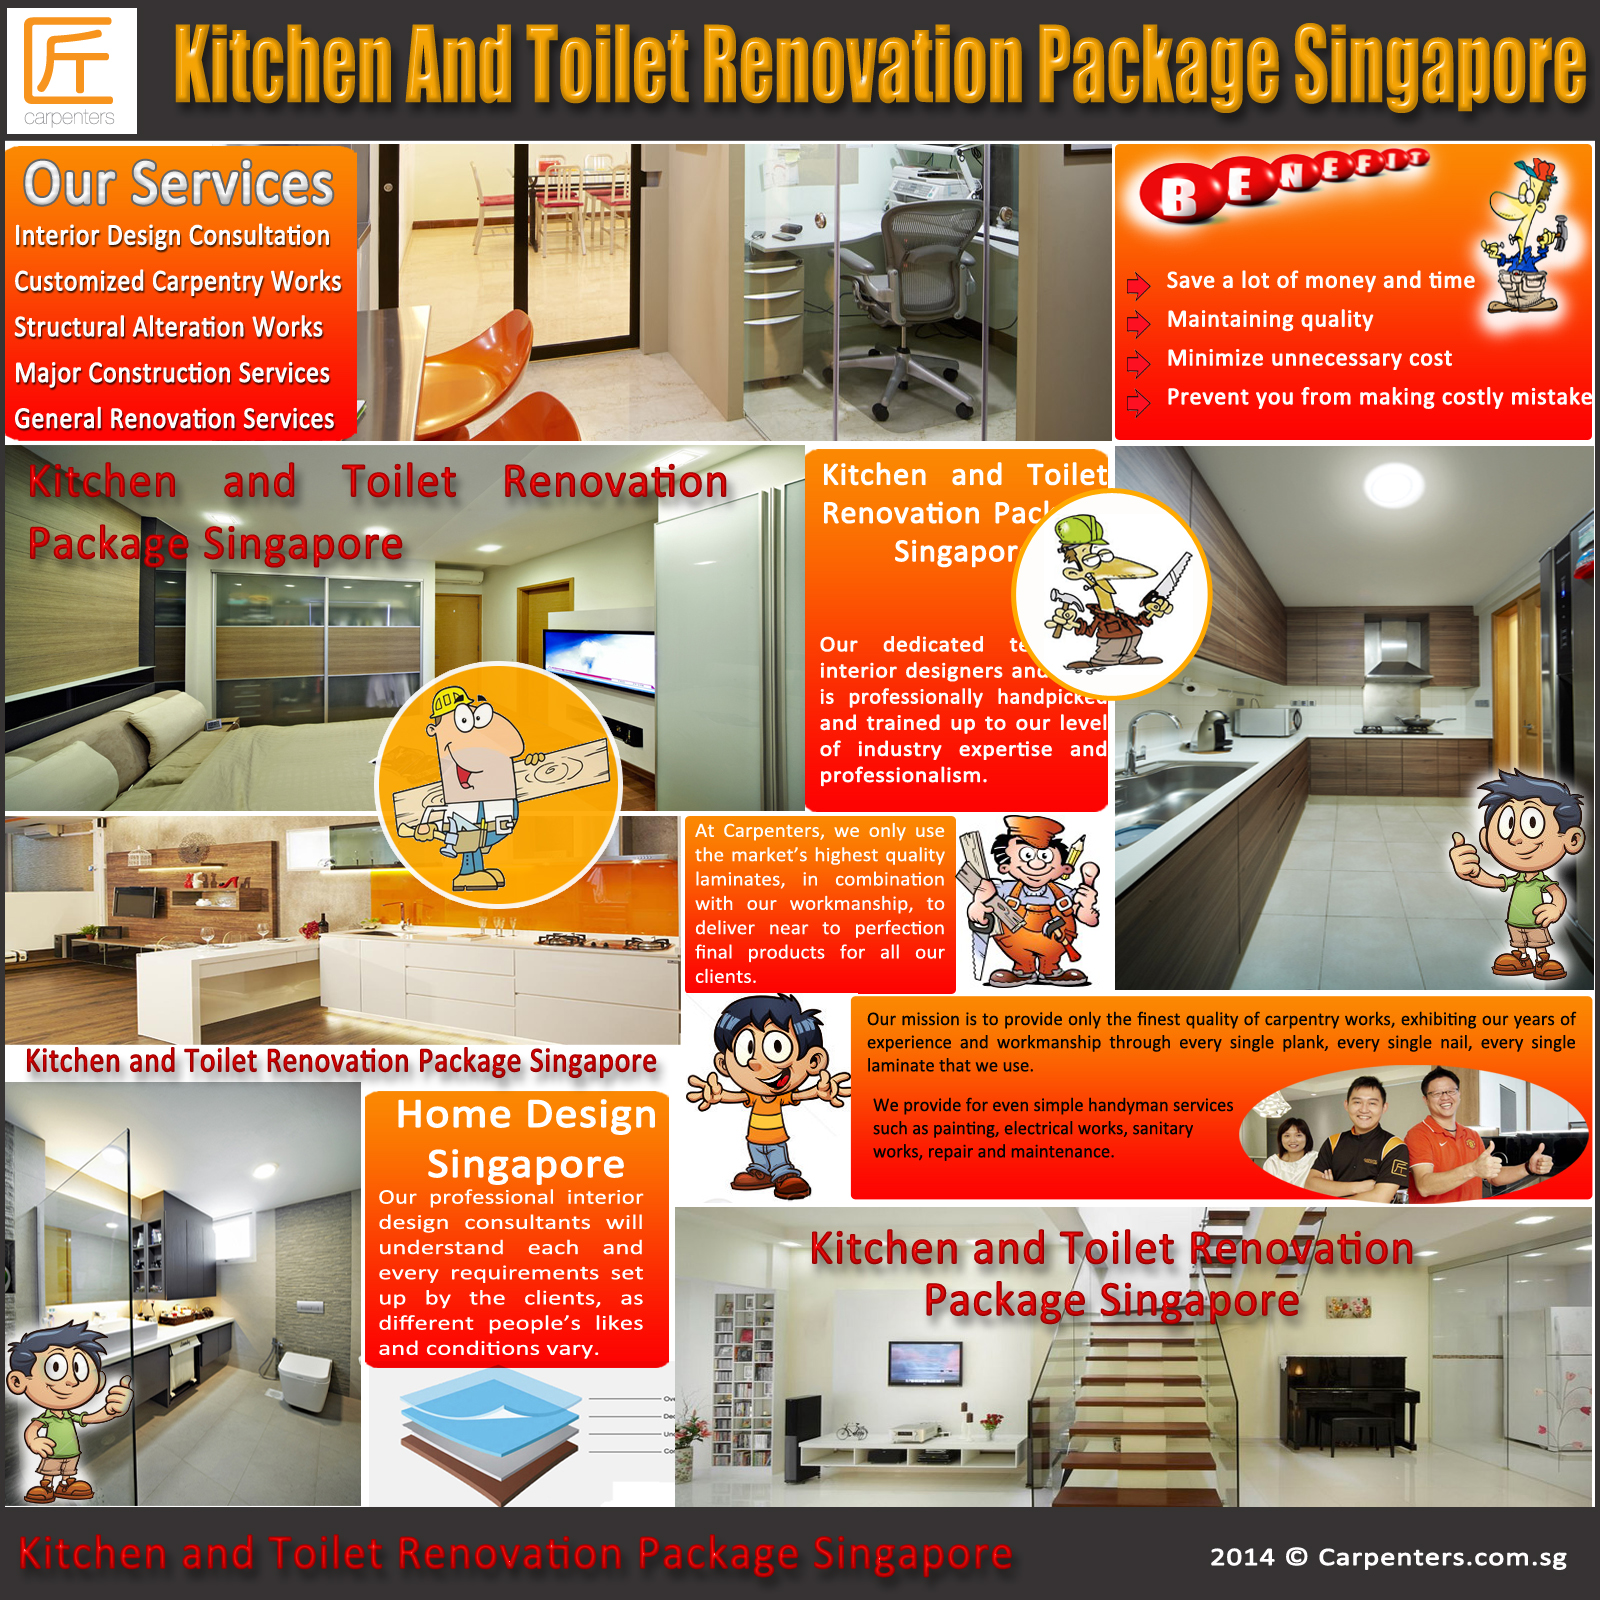 exceptional Kitchen Remodel Packages #3: Kitchen And Toilet Renovation Package Singapore | Carpenters .